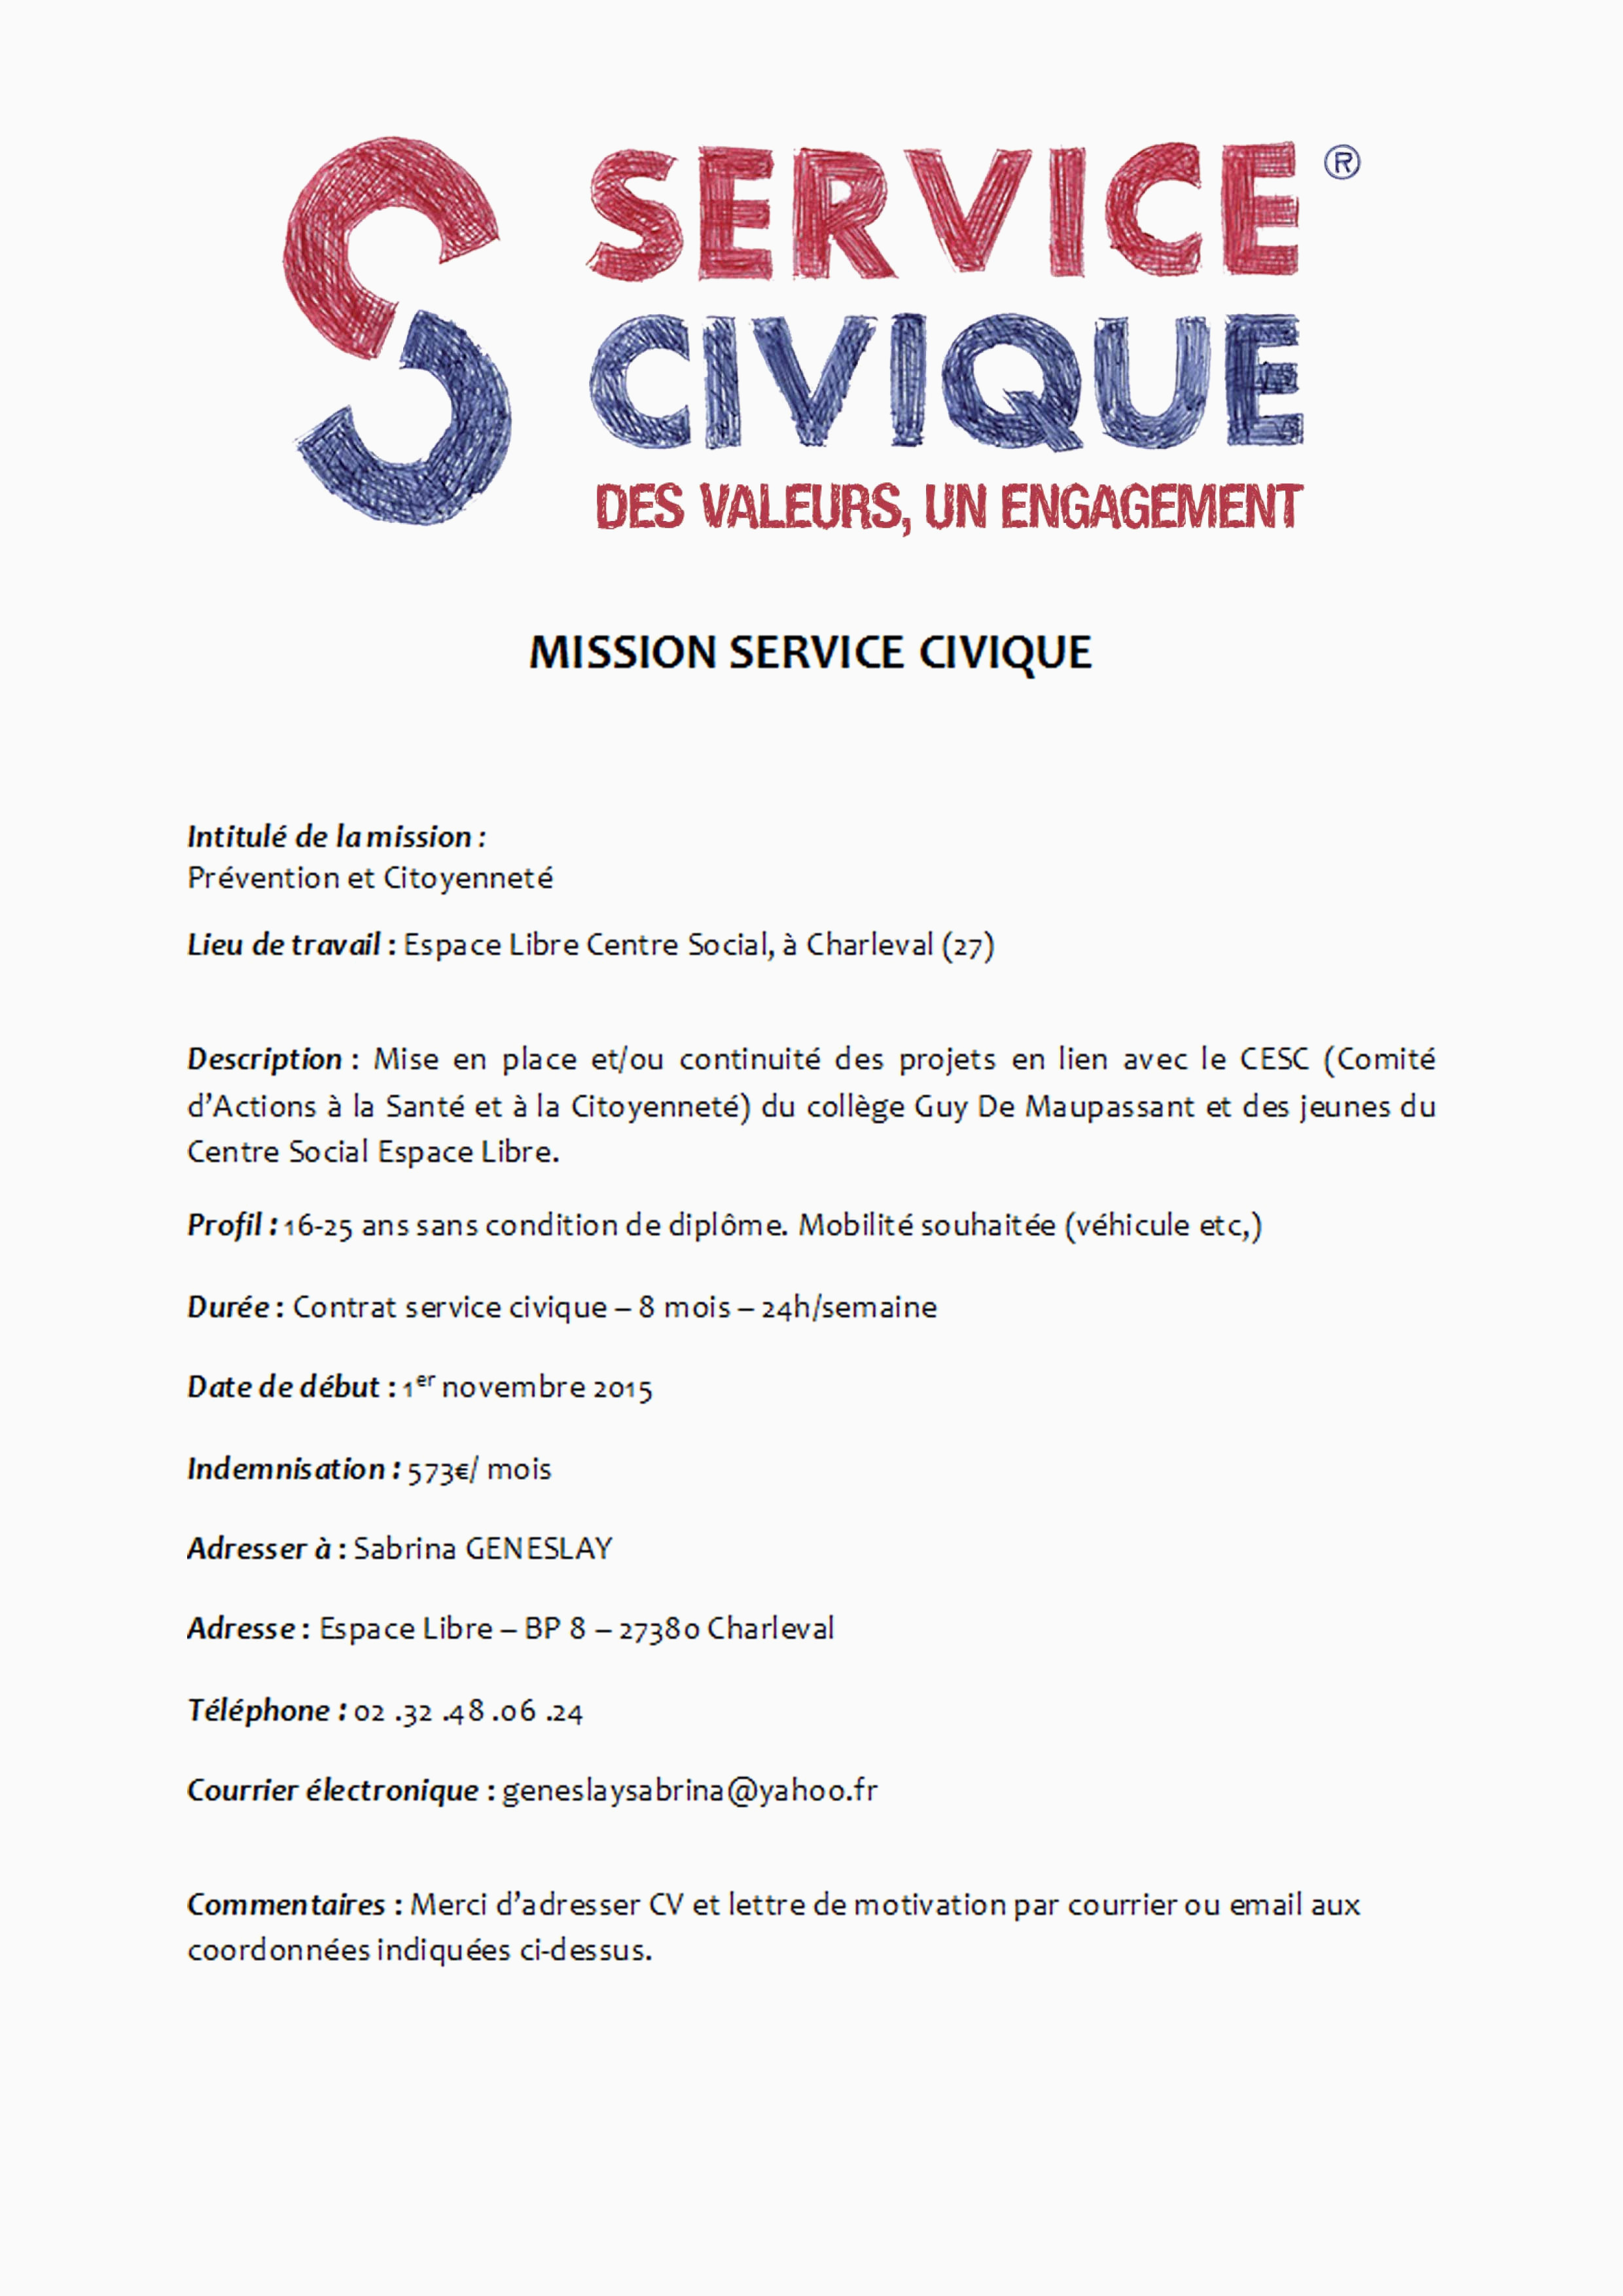 Exemple De Lettre De Motivation Service Civique 34 Modele Lettre De Demission Service Civique